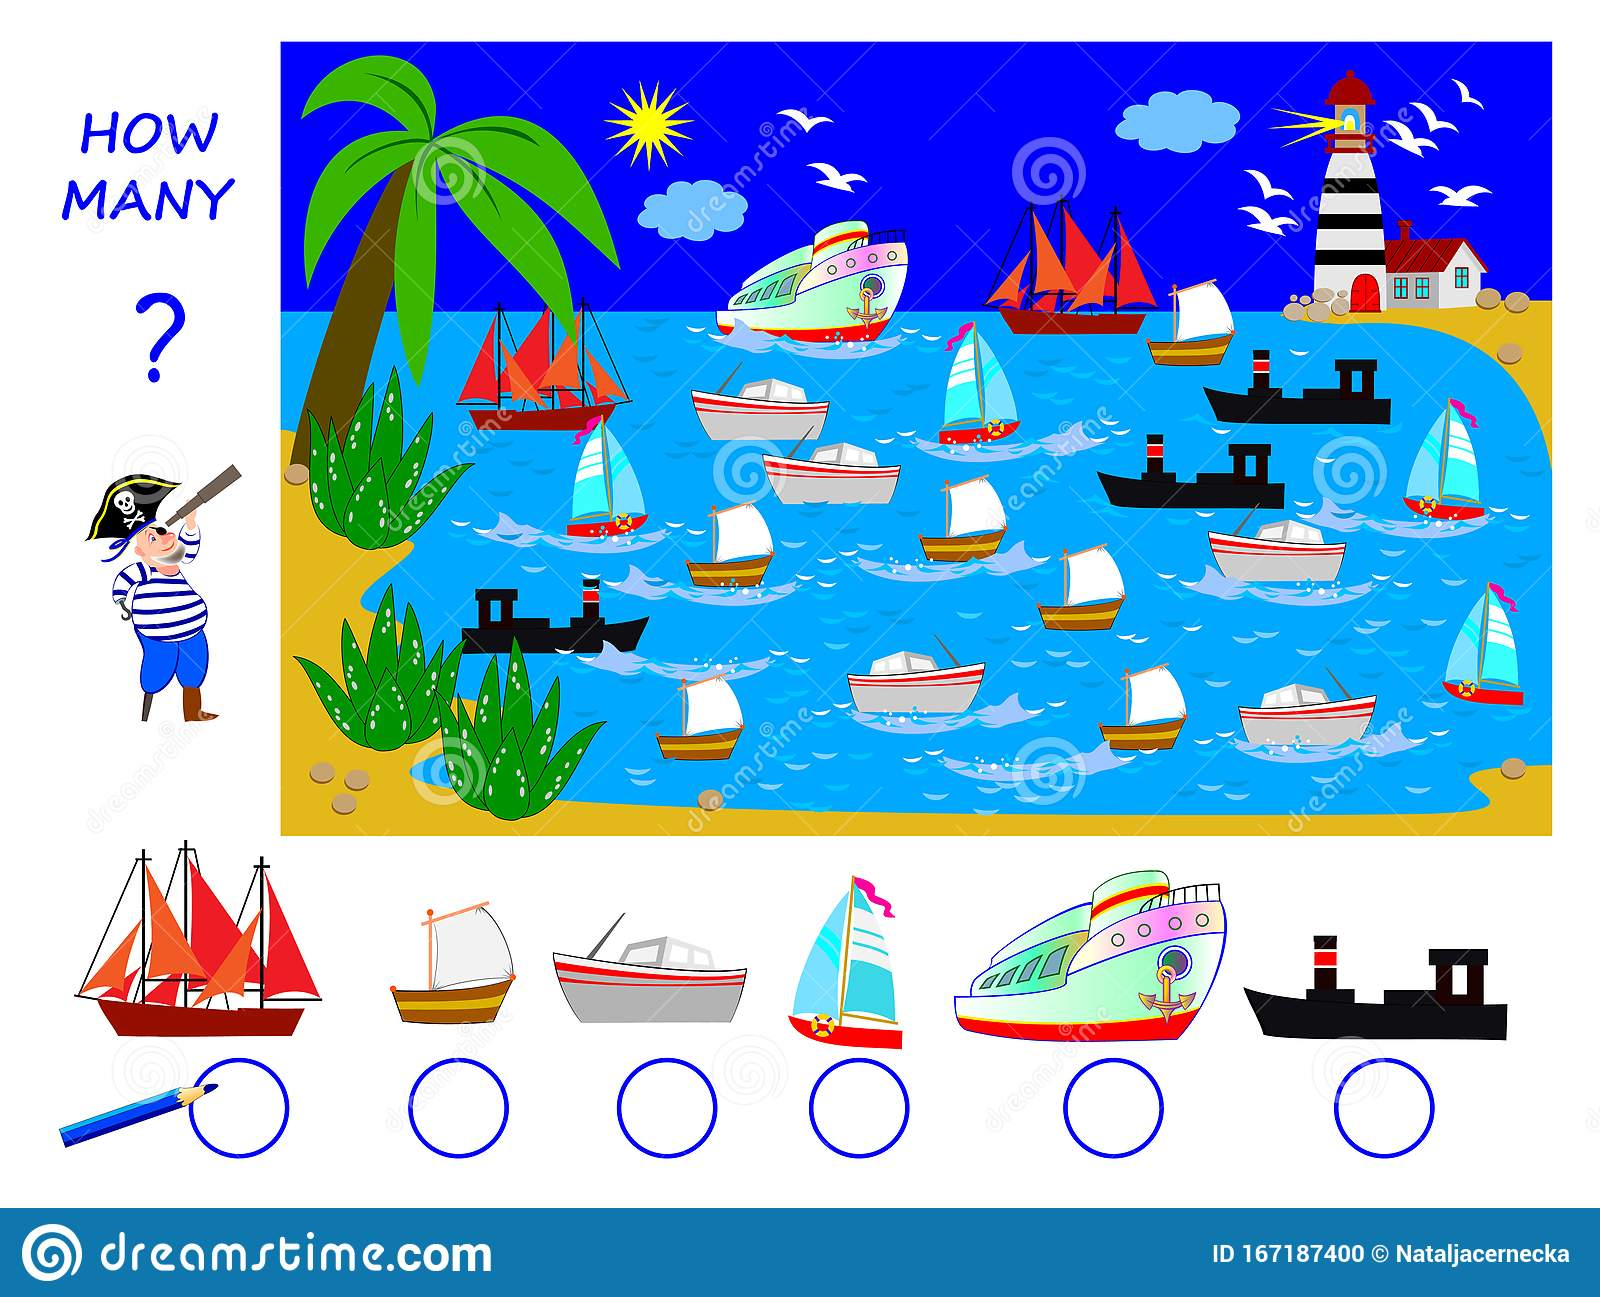 Math Education For Children Help The Pirate Count